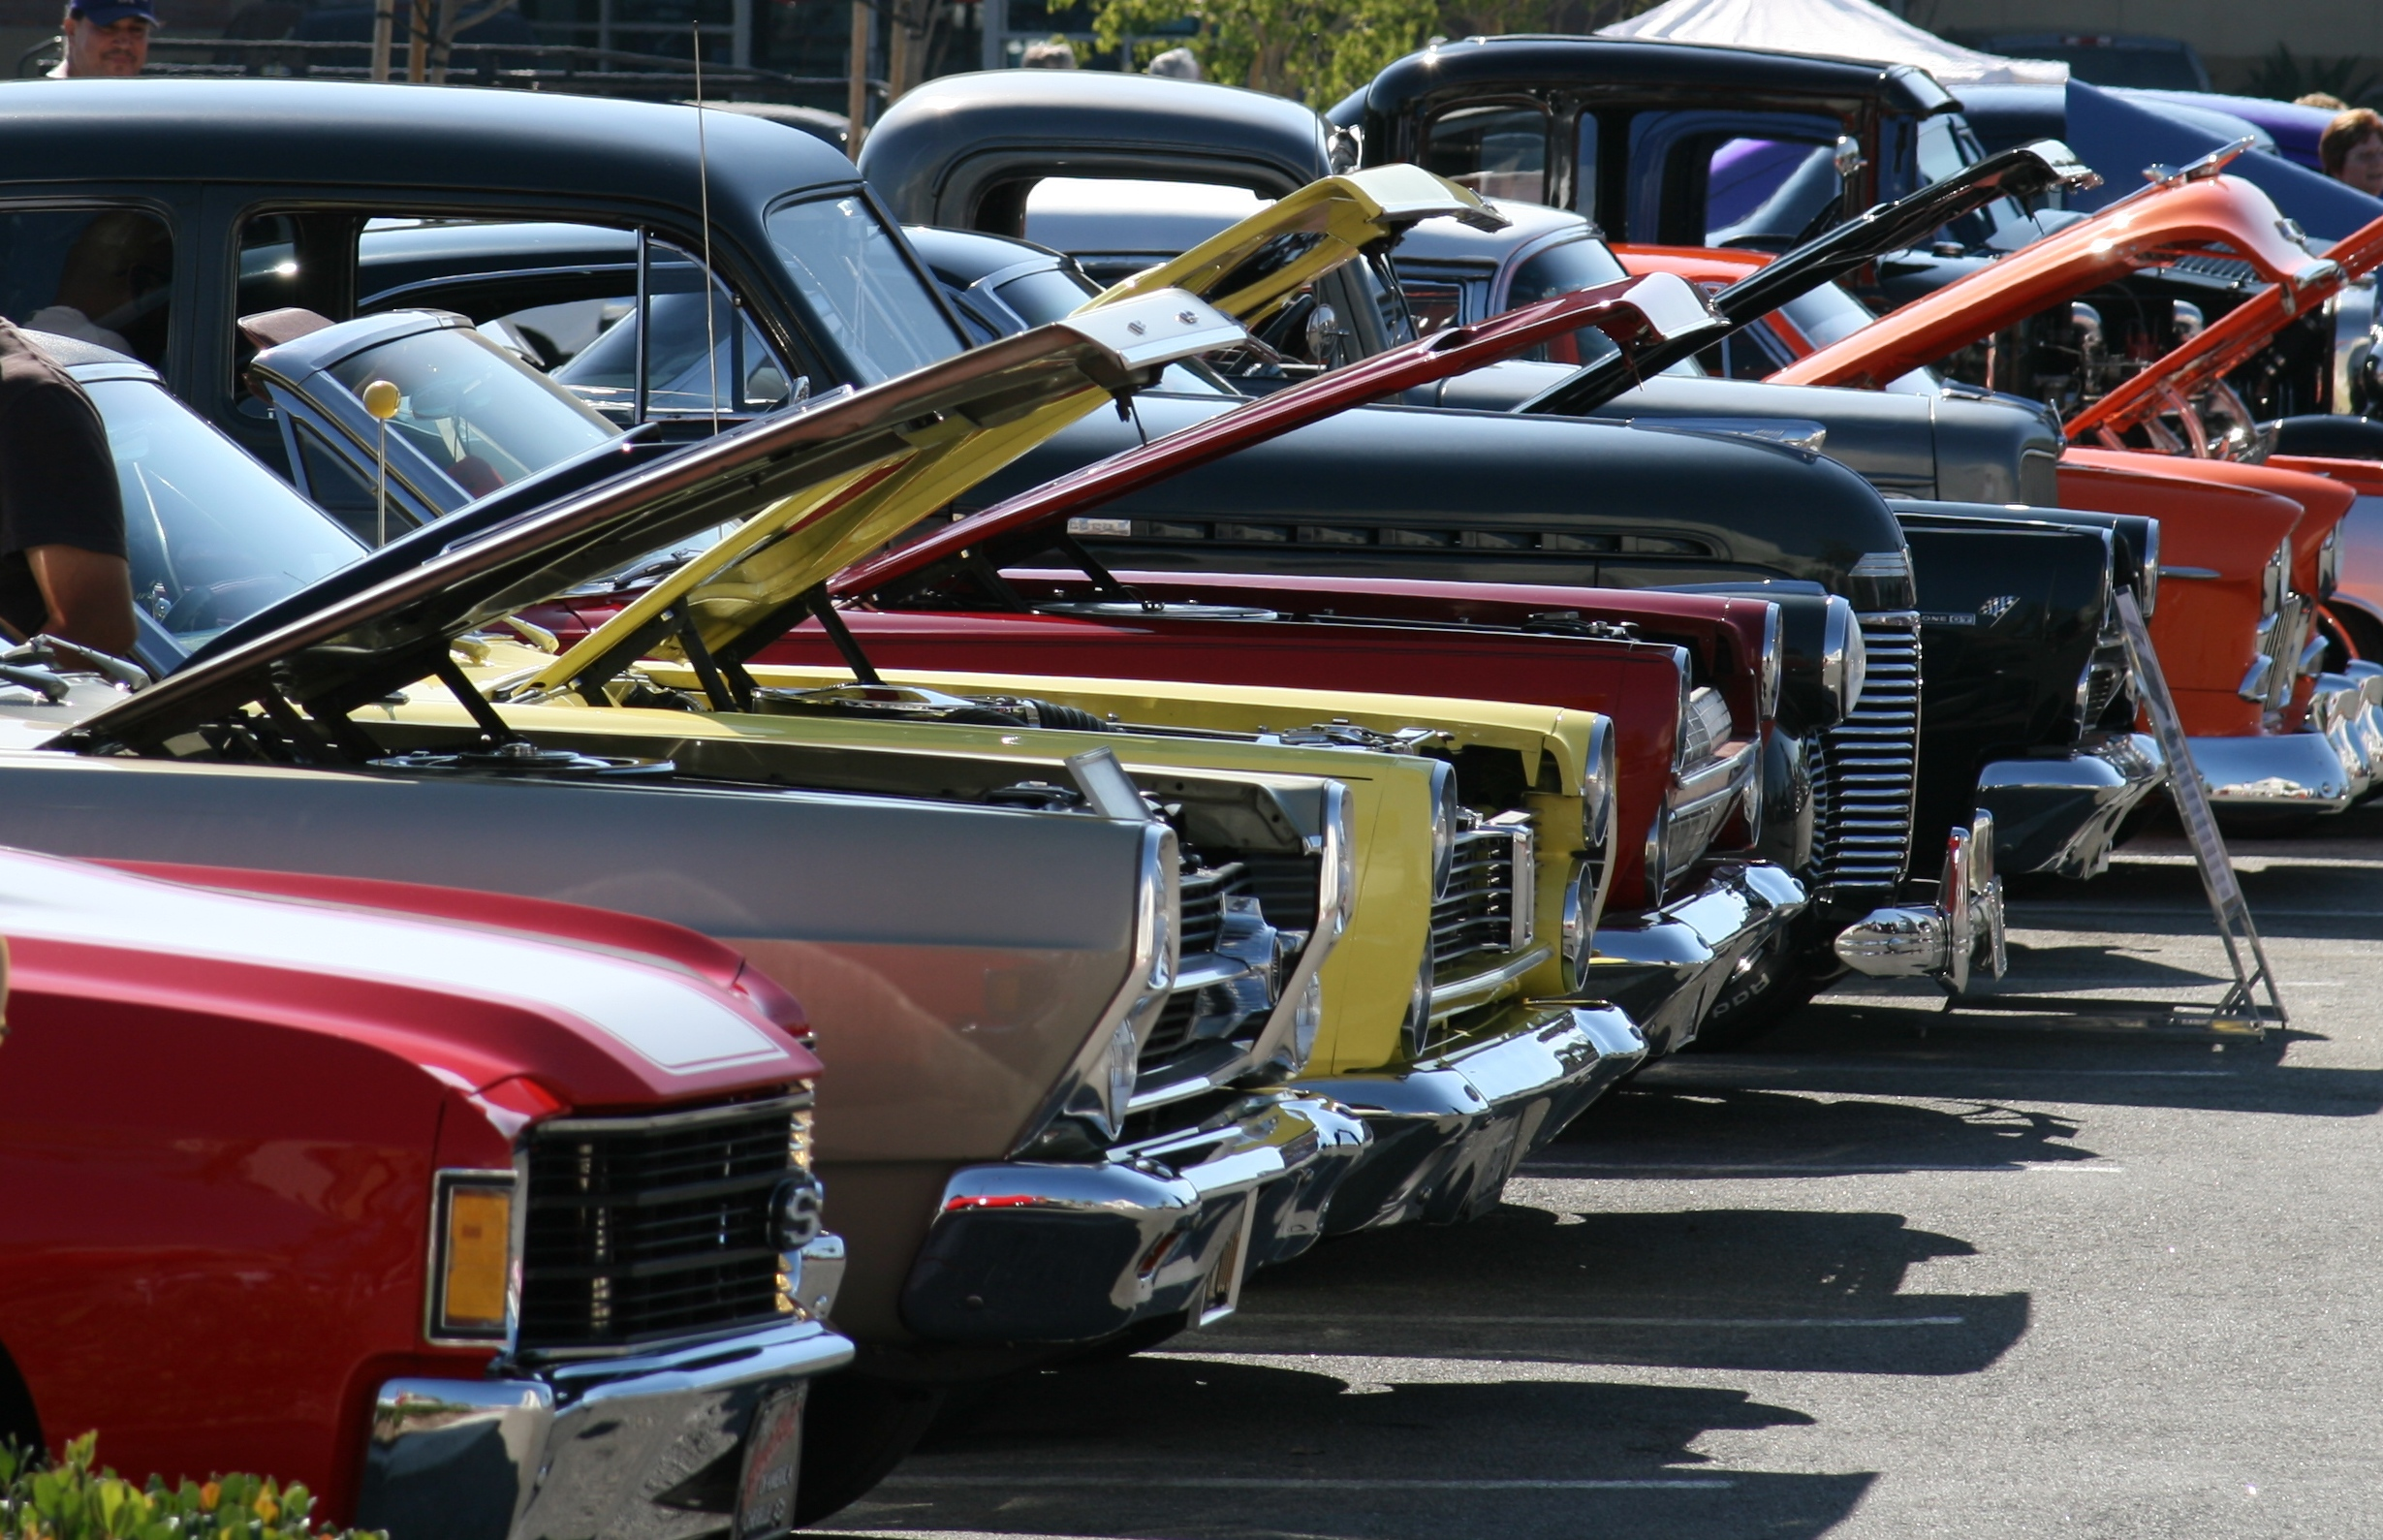 pics of car show -#main